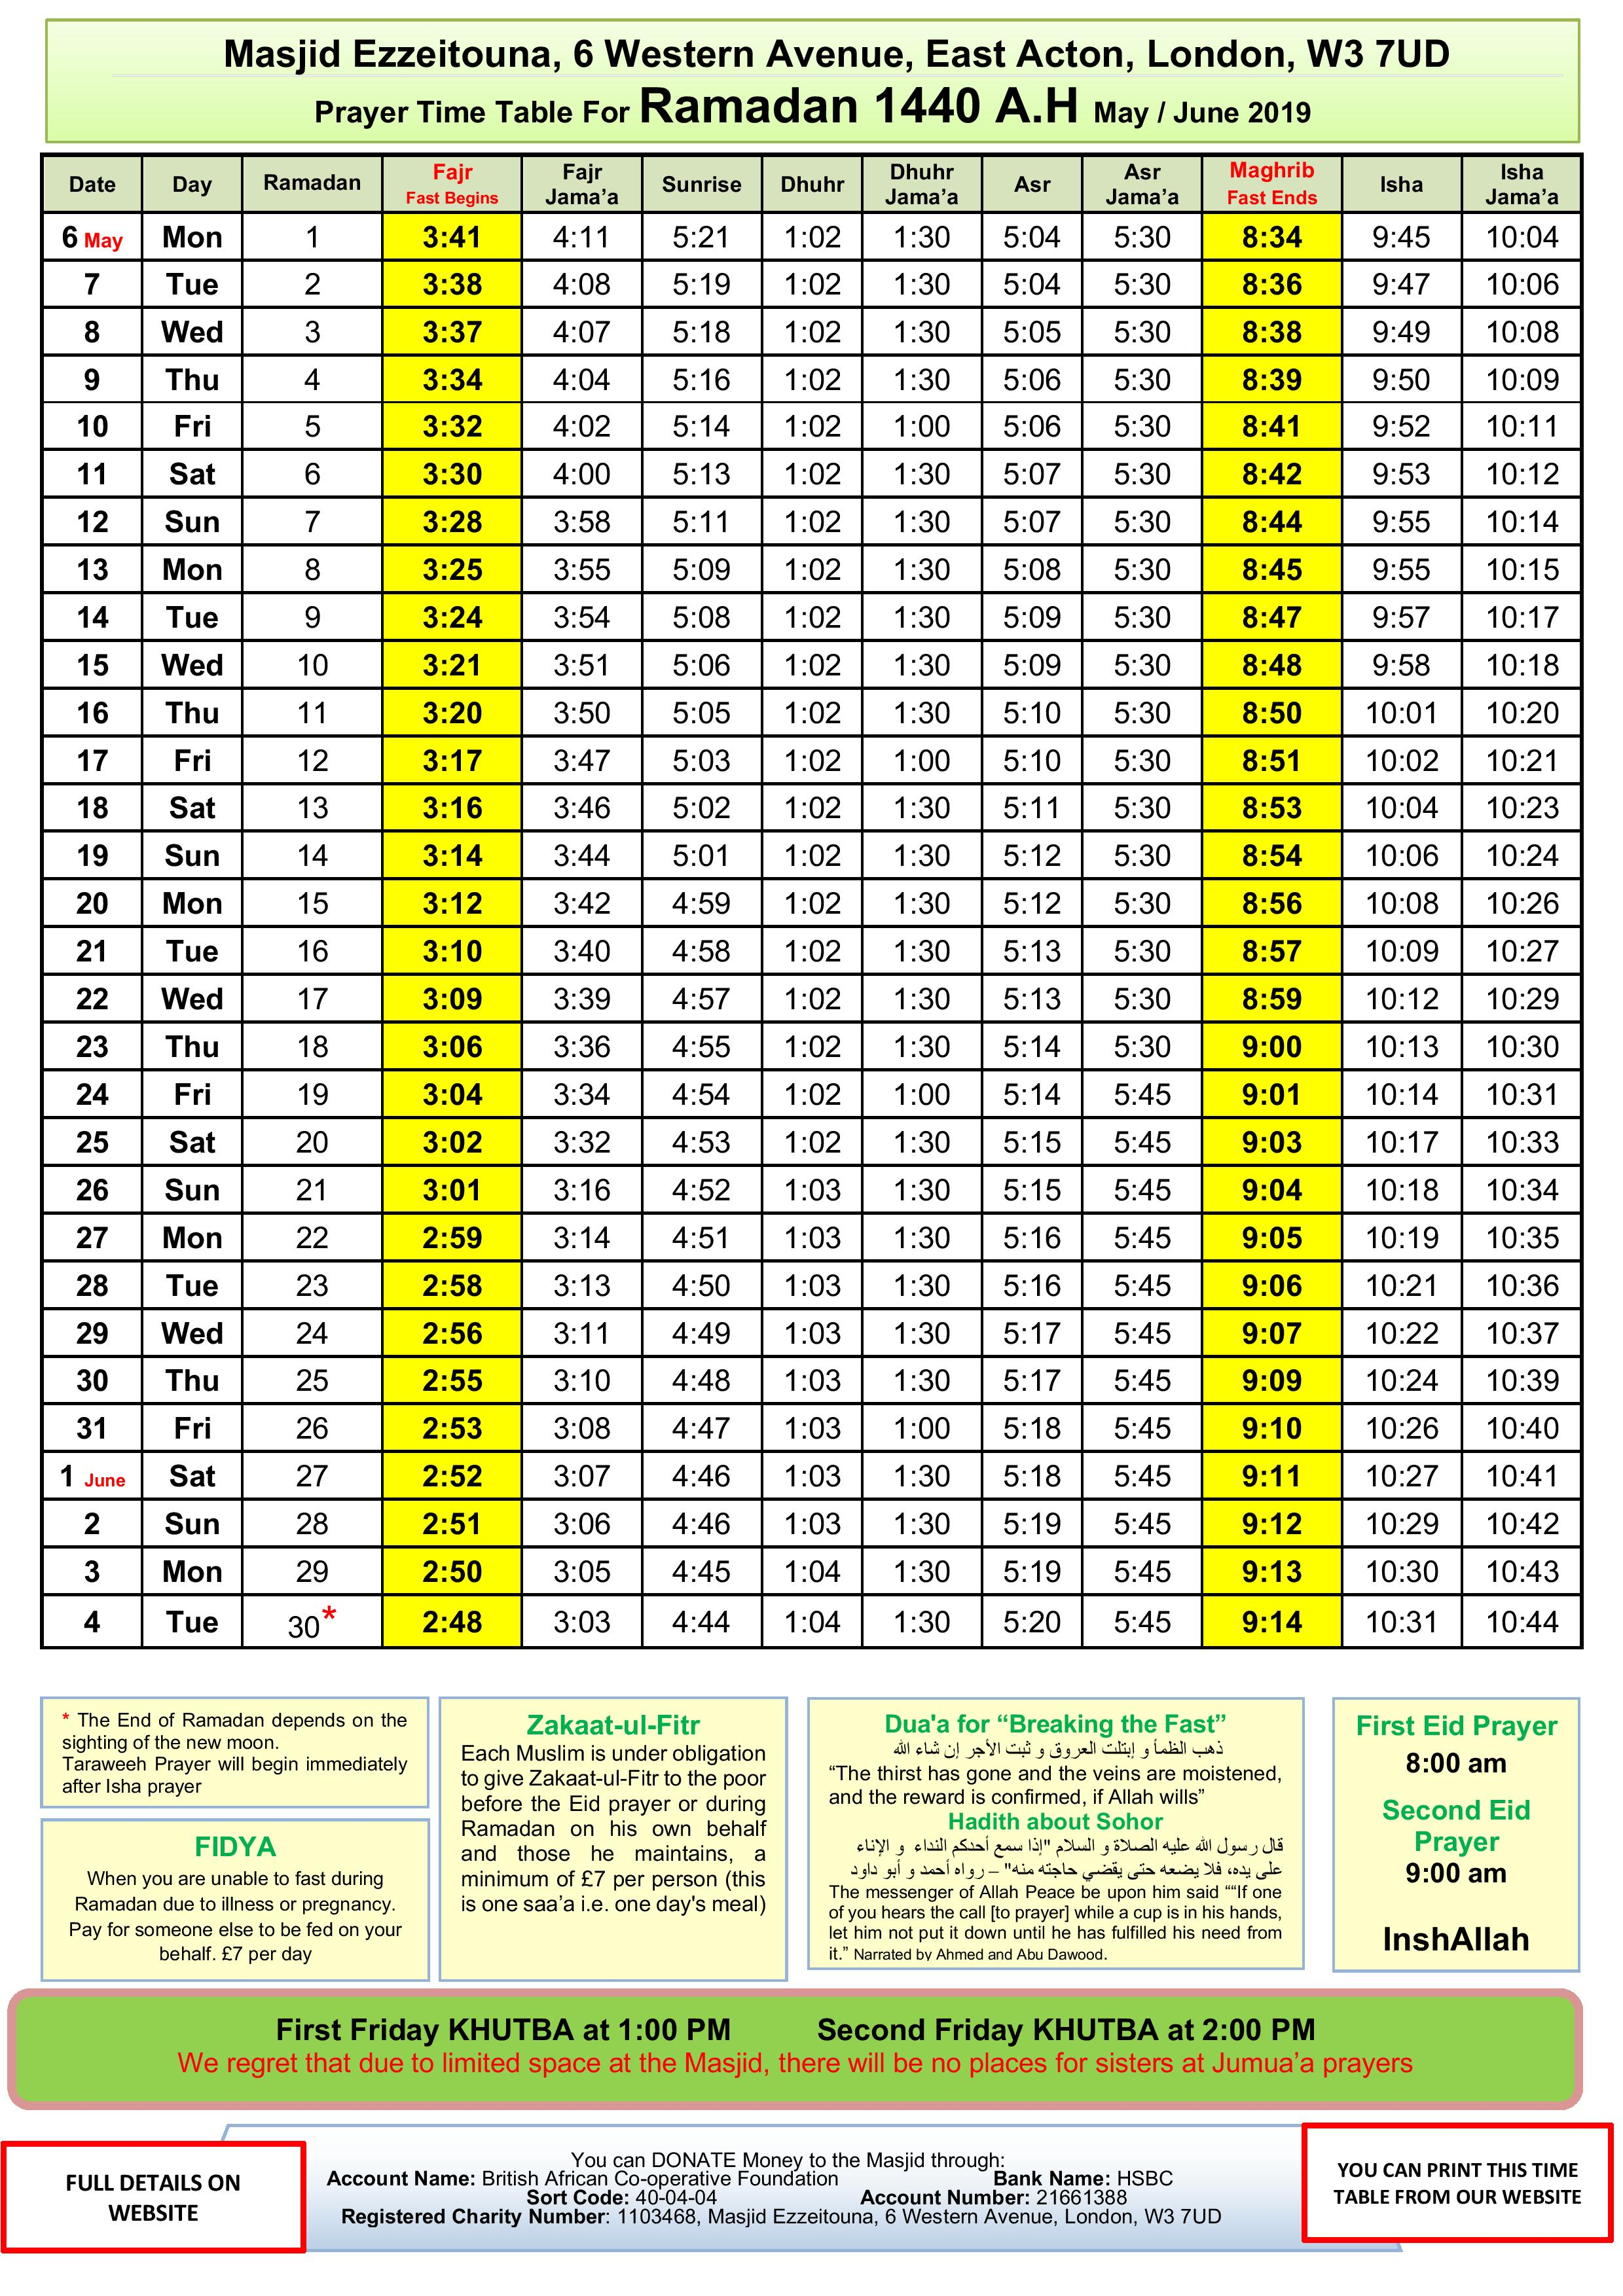 Prayers Timetable for Ramadan 2019- Masj